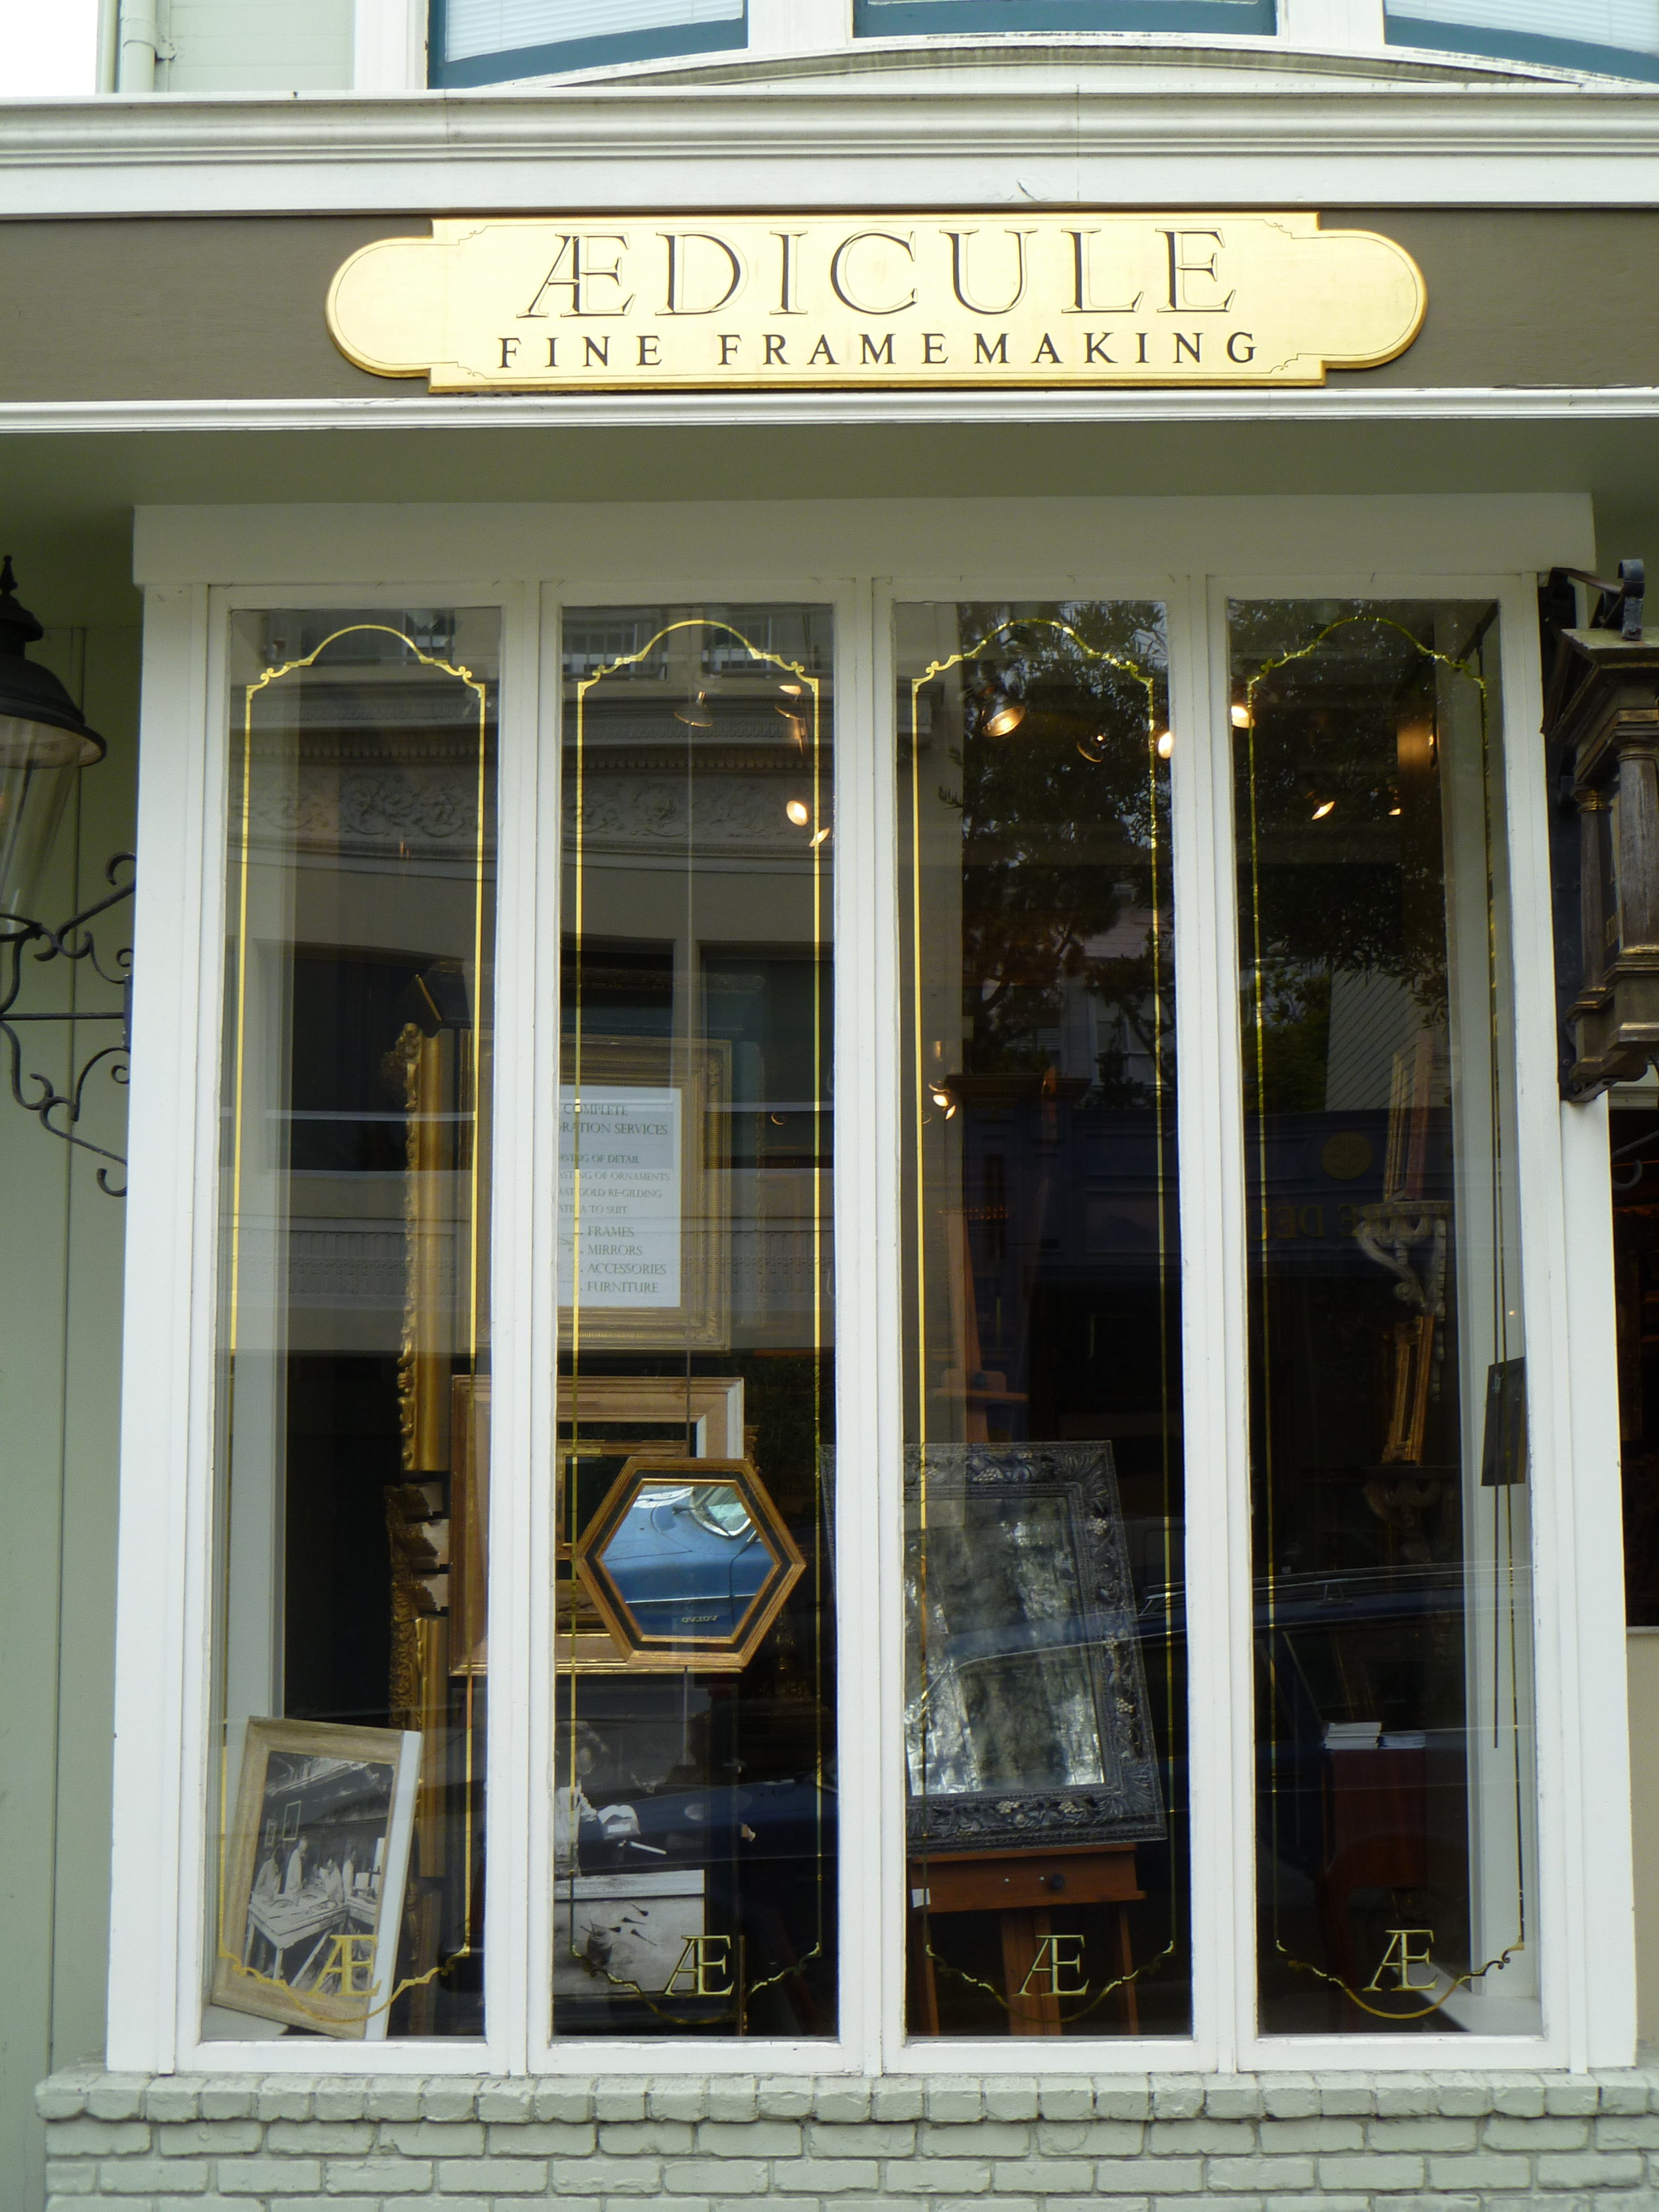 GOLD-aedicule-storefront_5006782410_o.jpg